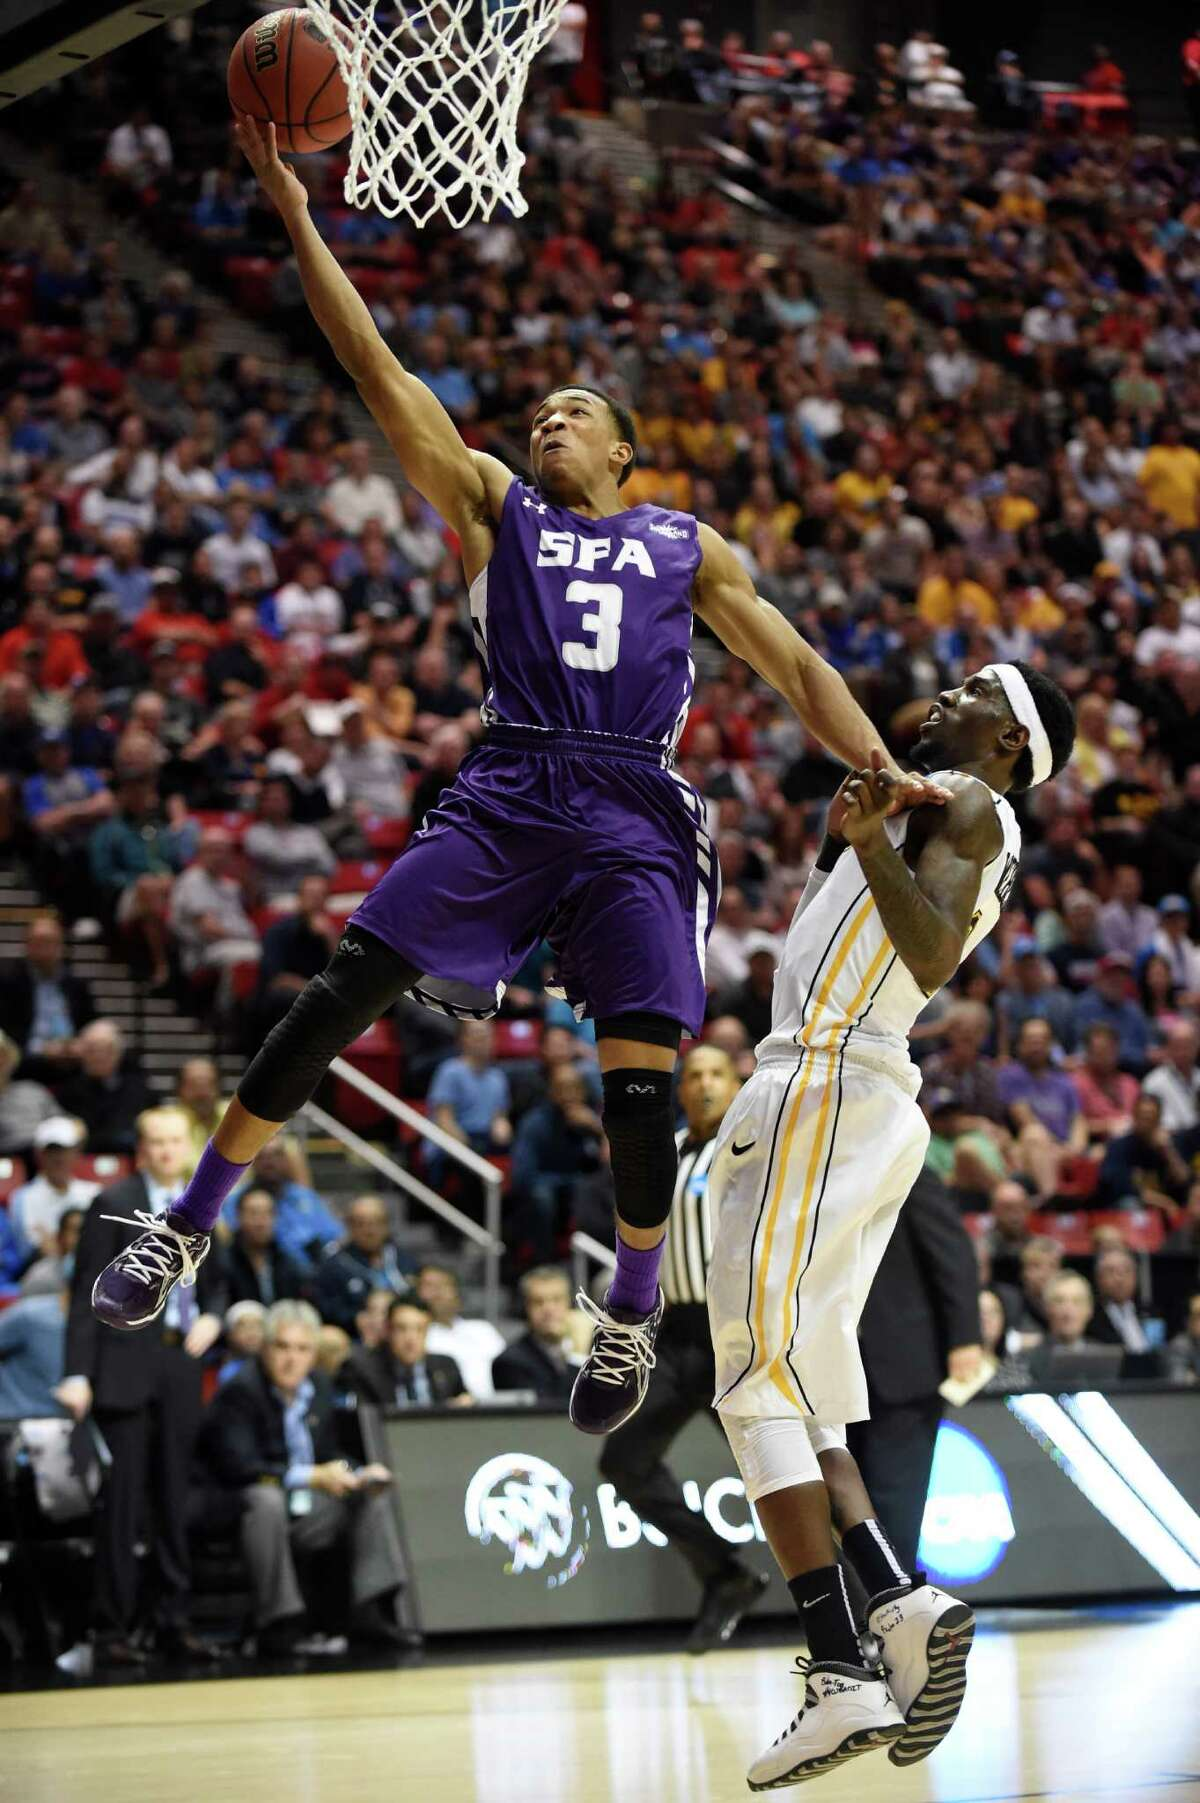 Stephen F. Austin guard Deshaunt Walker shoots past Virginia Commonwealth guard Briante Weber, right, during the first half of a second-round game in the NCAA college basketball tournament Friday, March 21, 2014, in San Diego. (AP Photo/Denis Poroy)